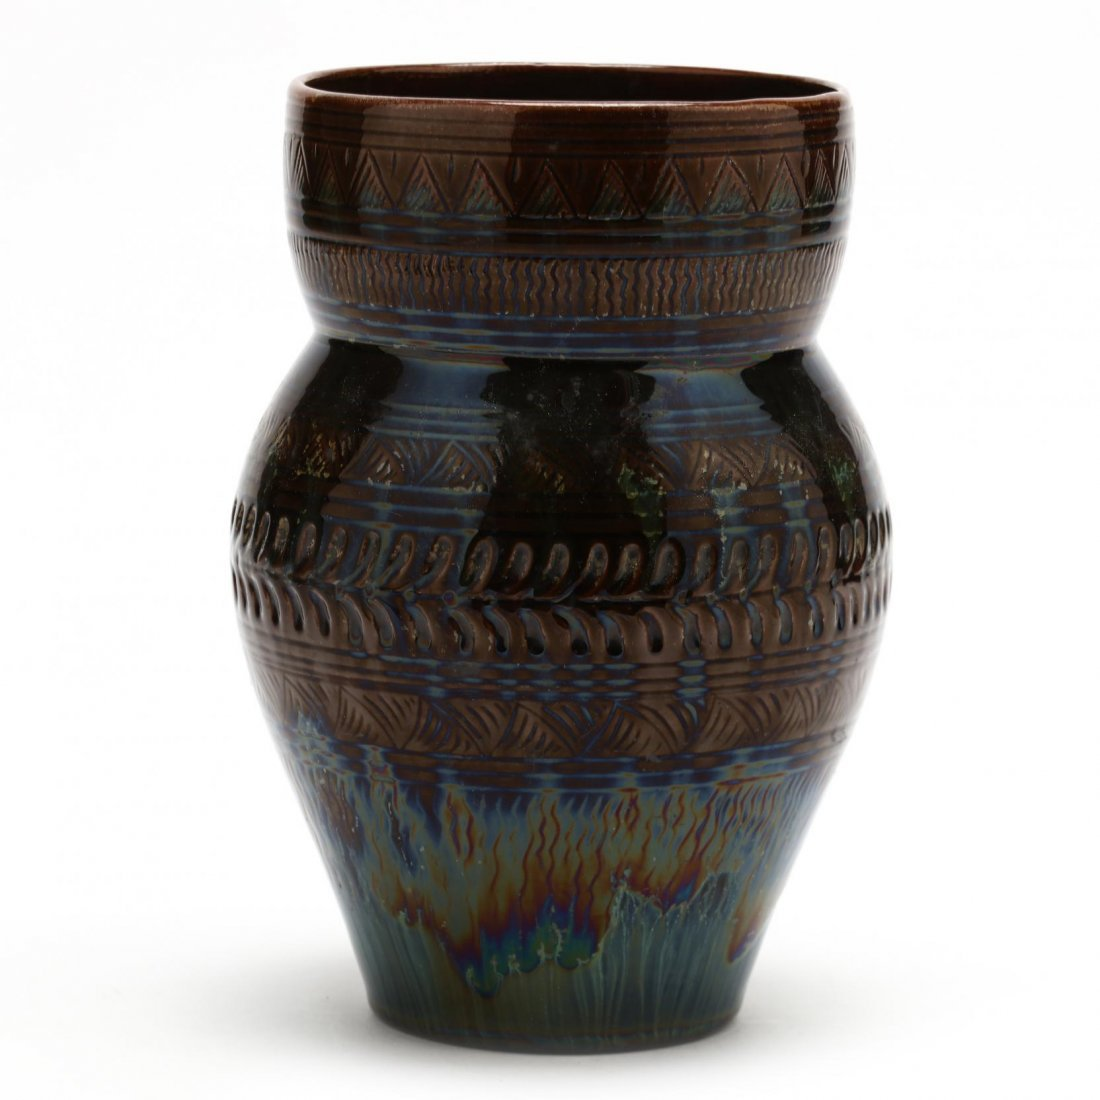 Christopher Dresser for Linthorpe, Pottery Vase